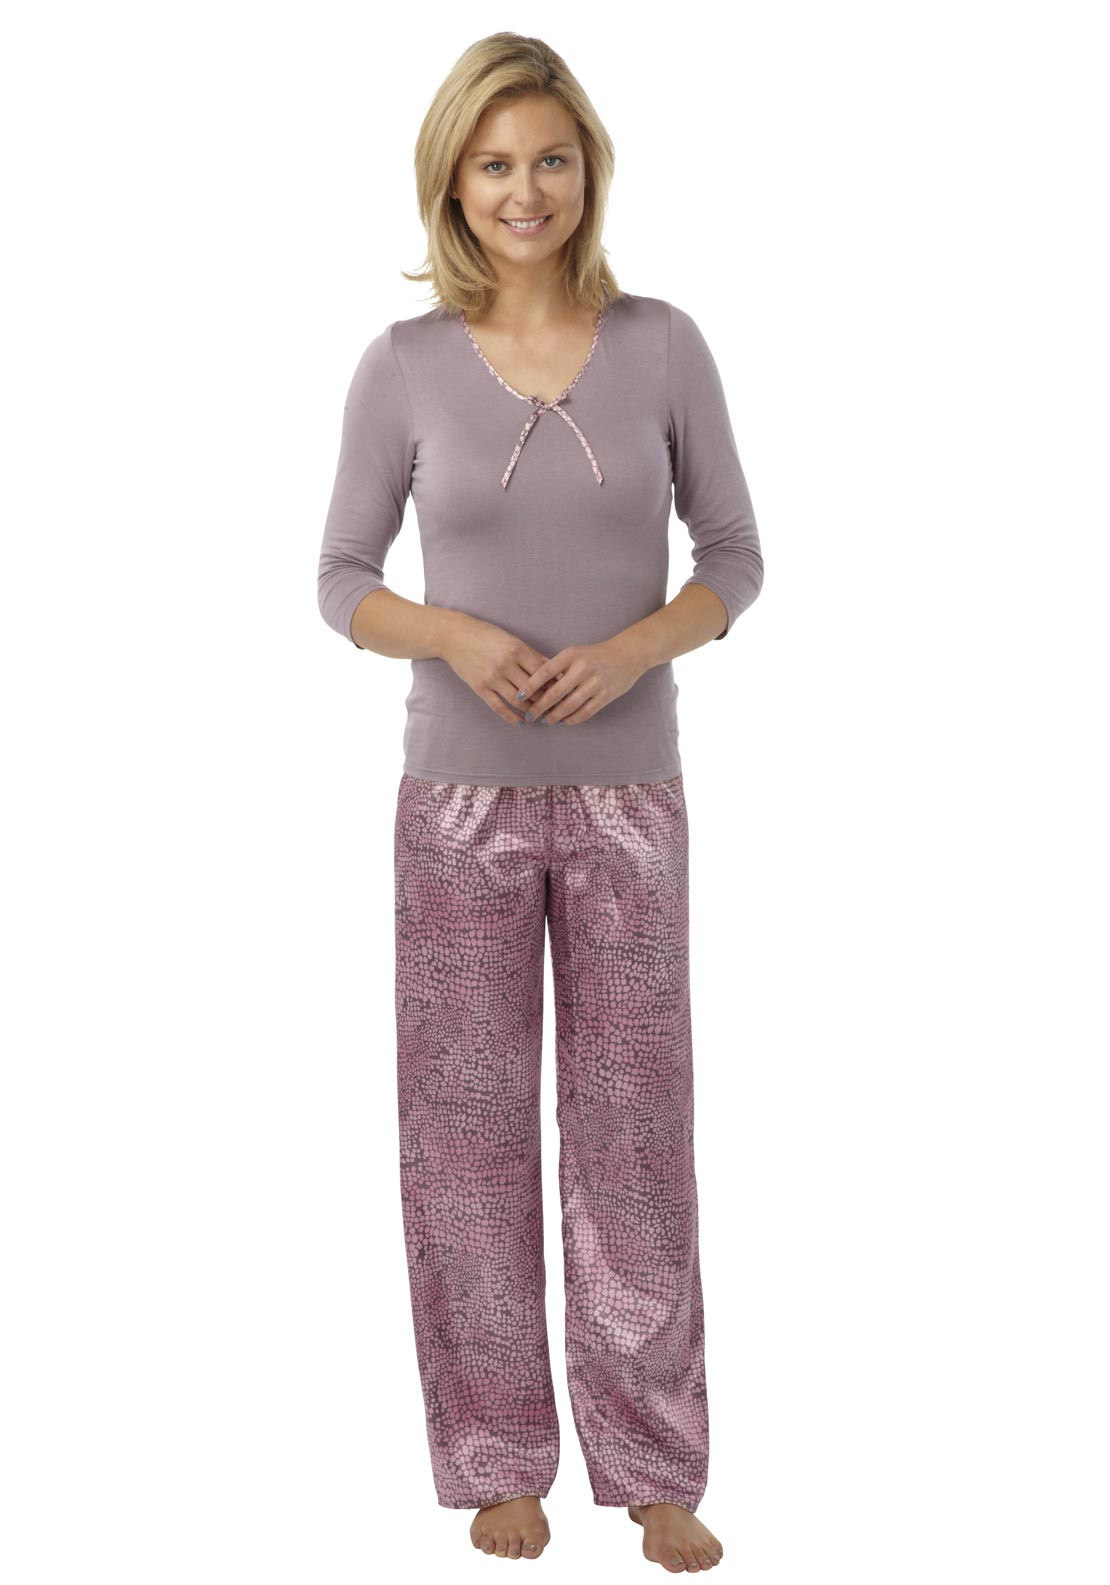 Indigo Sky Top and Geometric Print Bottoms Pyjamas, Mink and Pink